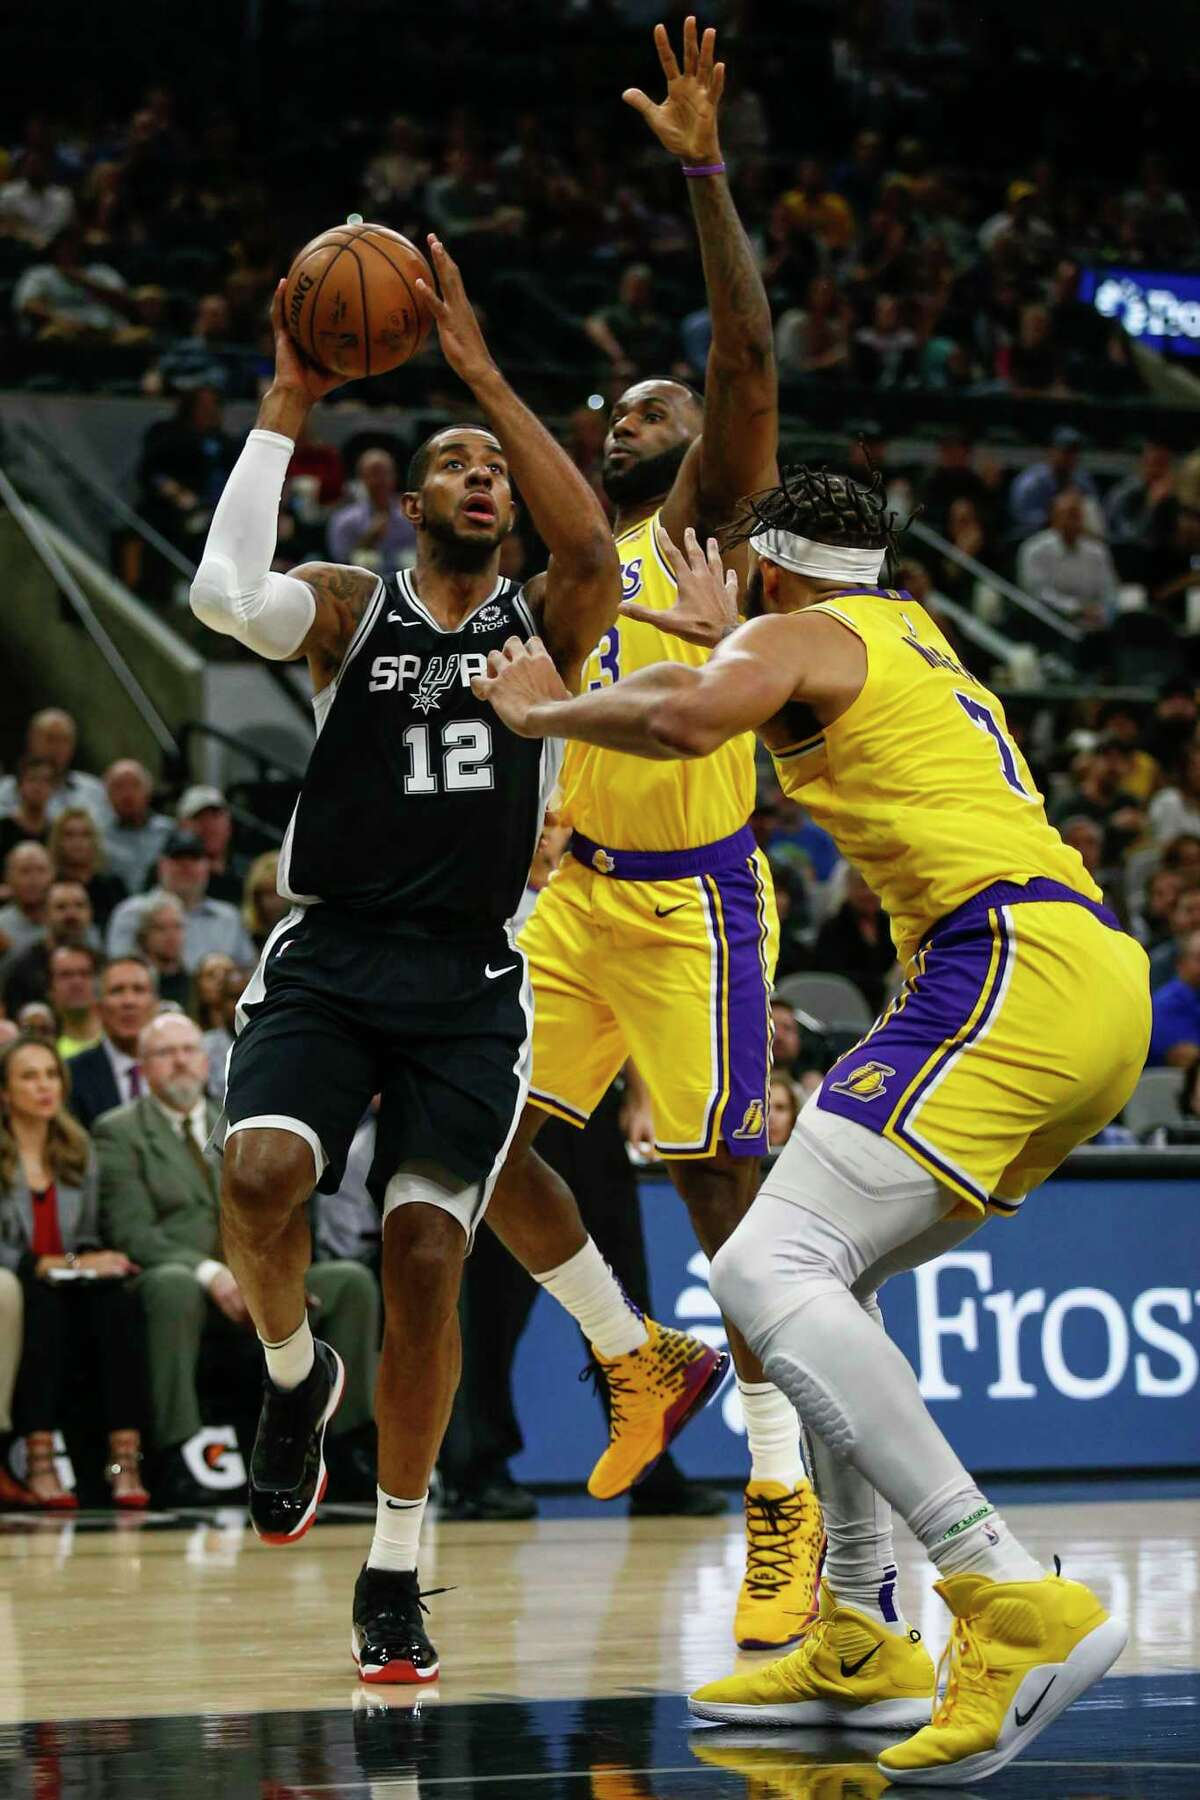 San Antonio Spurs' LaMarcus Aldridge goes for a shot as he is backed by Los Angeles Lakers' Lebron James and JaVale McGee as the Spurs play the Los Angeles Lakers at AT&T Center in San Antonio, Texas on Nov. 25, 2019.